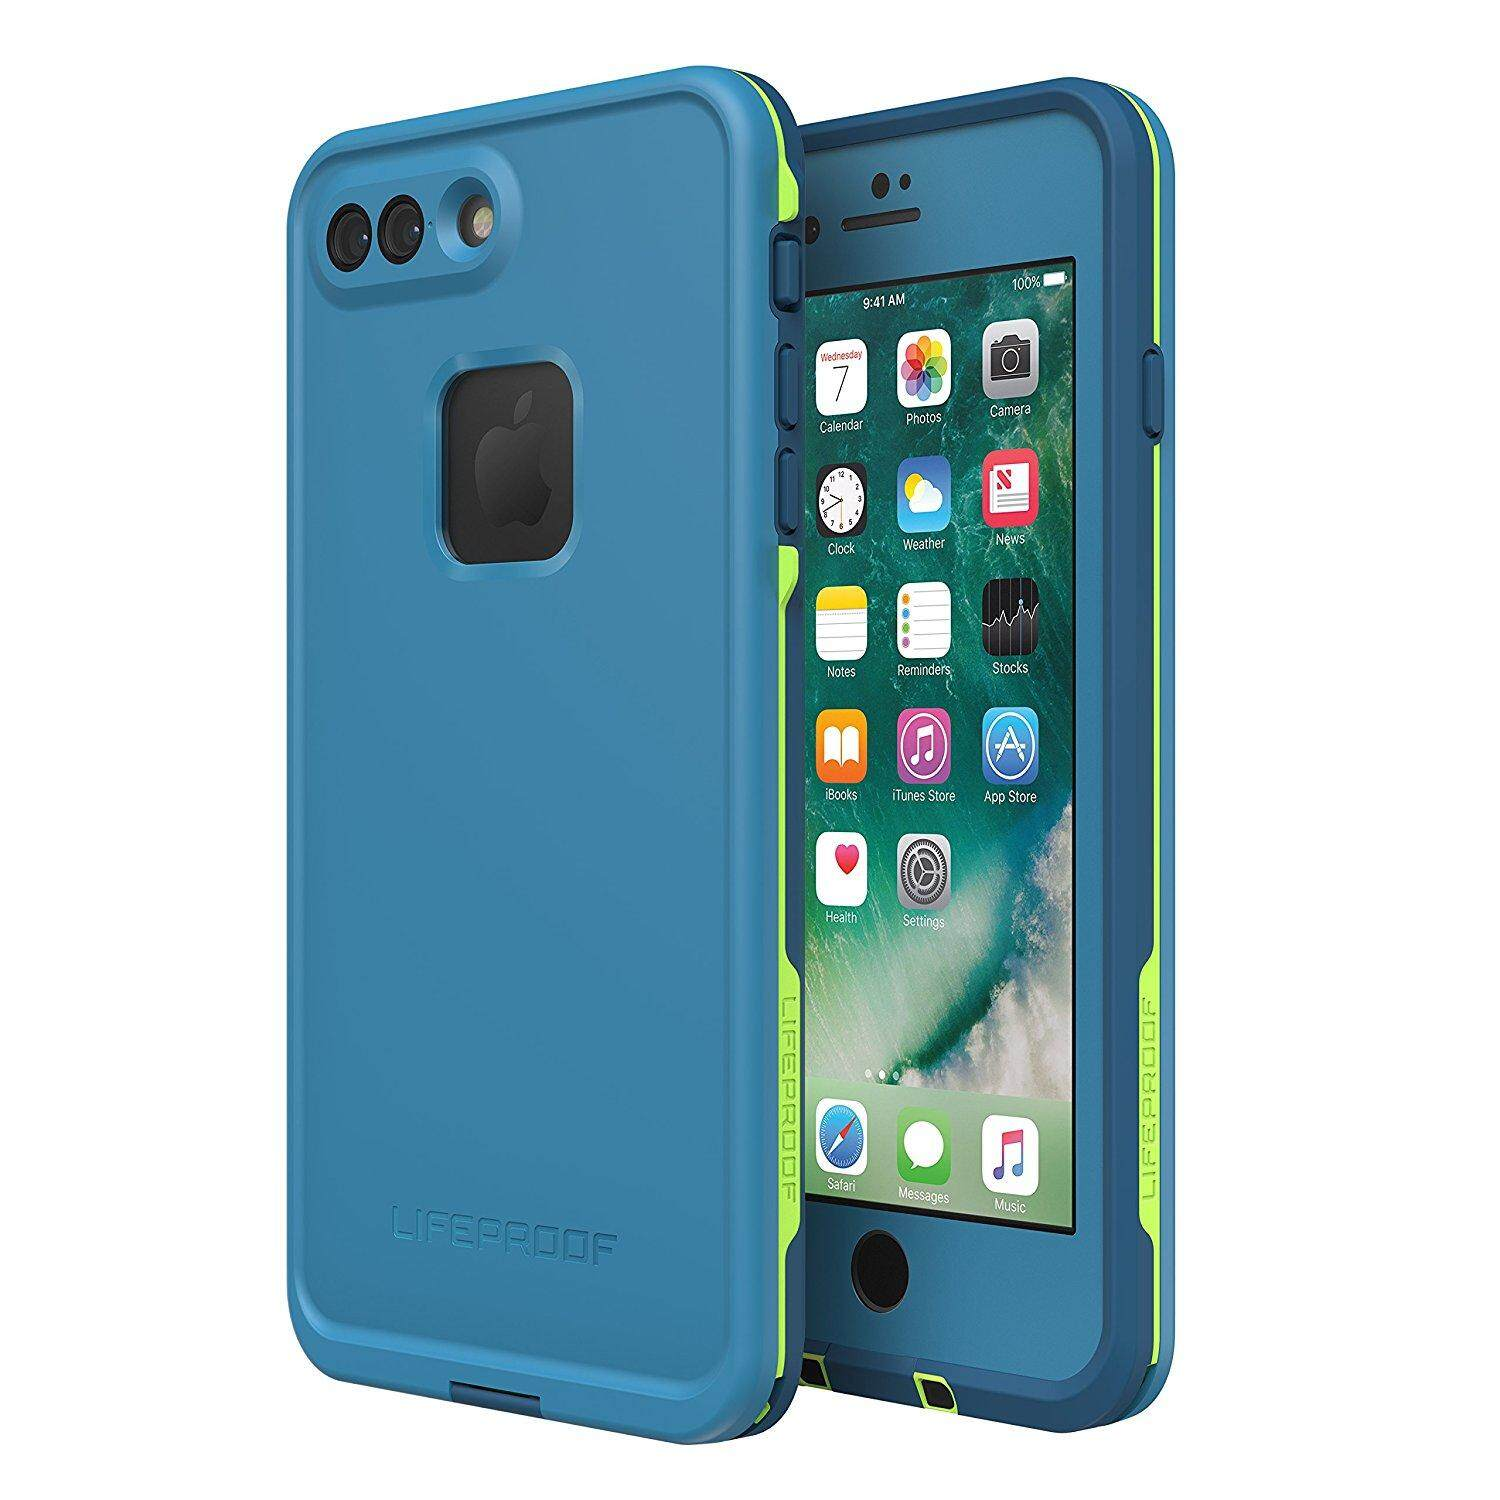 competitive price e7a40 cc68f Original LifeProof FRE Series Protective Case compatible with Apple iPhone  8 Plus & 7 Plus